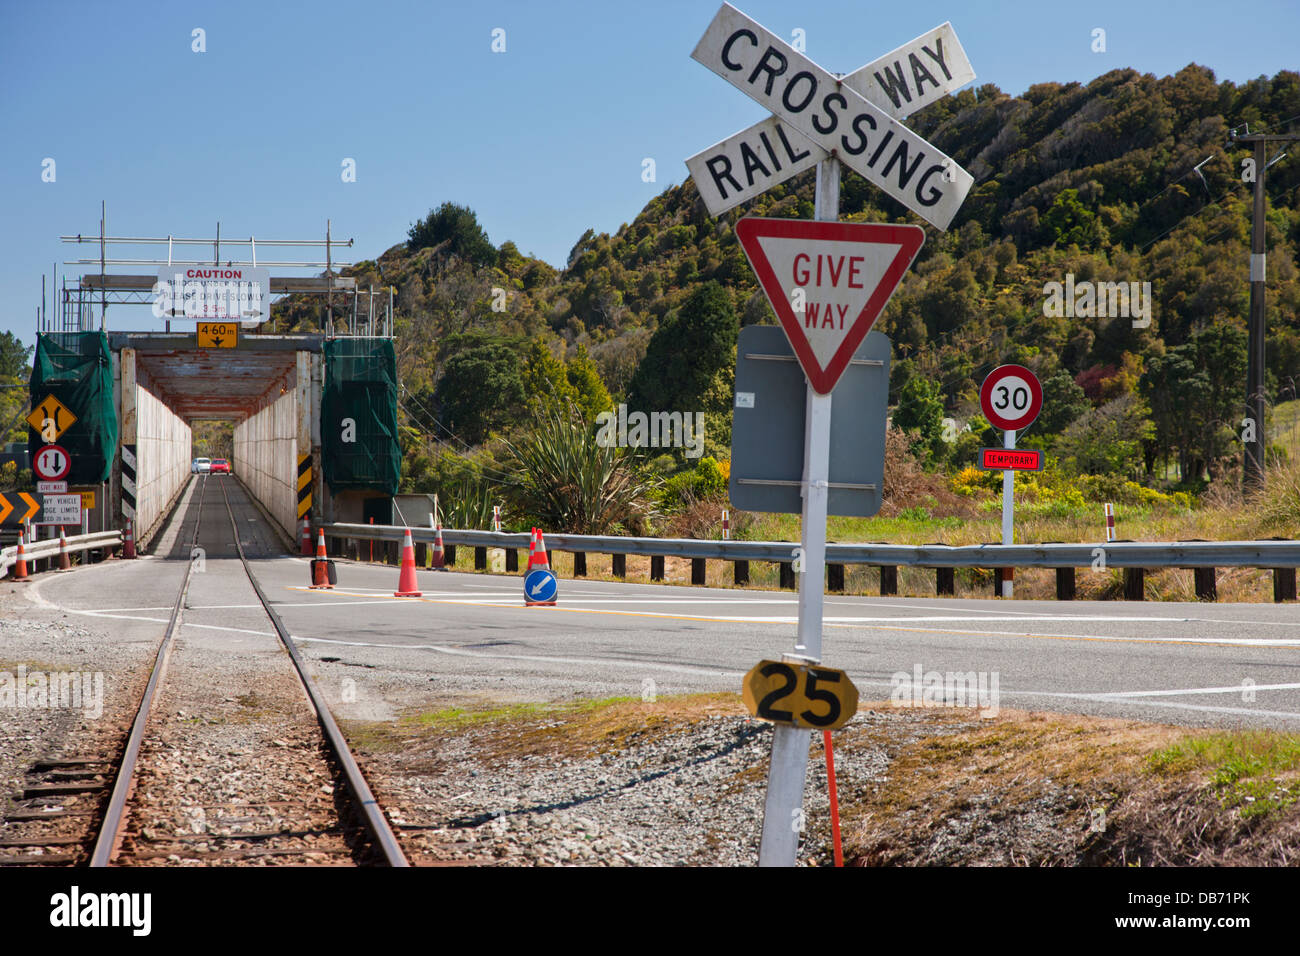 South Pacific, New Zealand, South Island. Bridge shared by cars, trucks, and trains. - Stock Image